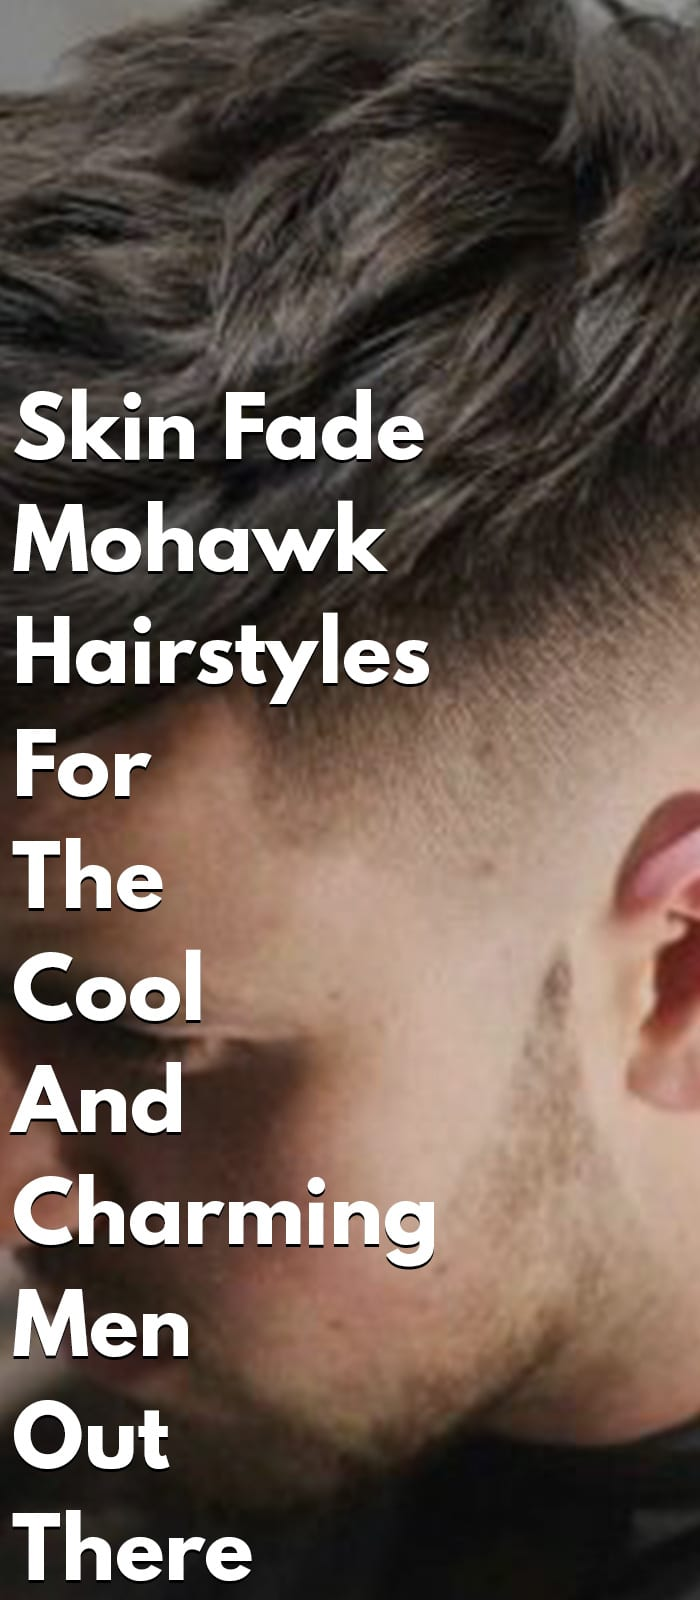 Skin Fade Mohawk Hairstyles For The Cool And Charming Men Out There